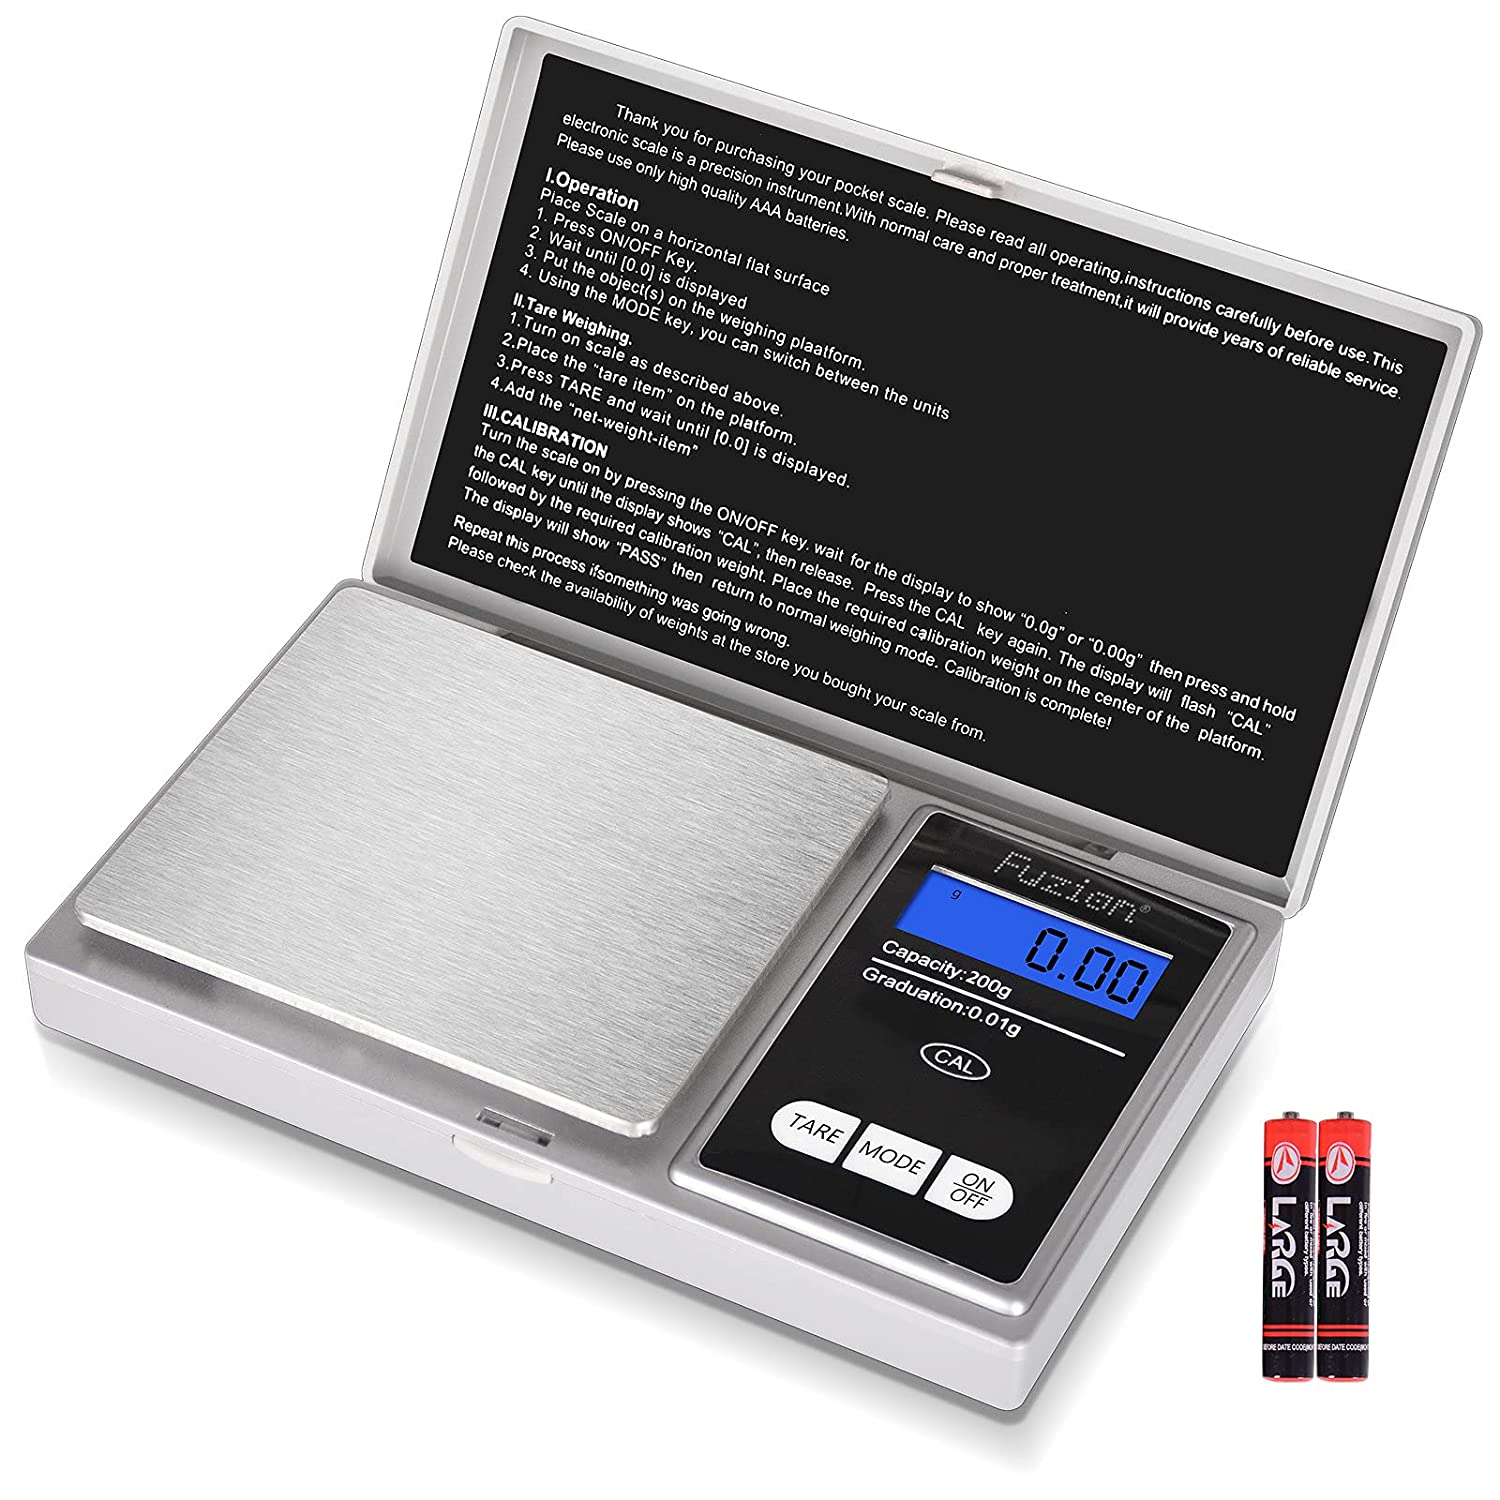 Fuzion Digital Gram Scale, 200g/0.01g Mini Jewelry Scale, Herb Scale Gram and Ounce, Portable Travel Food Scale with LCD Display, Stainless Steel, Tare, Battery Included